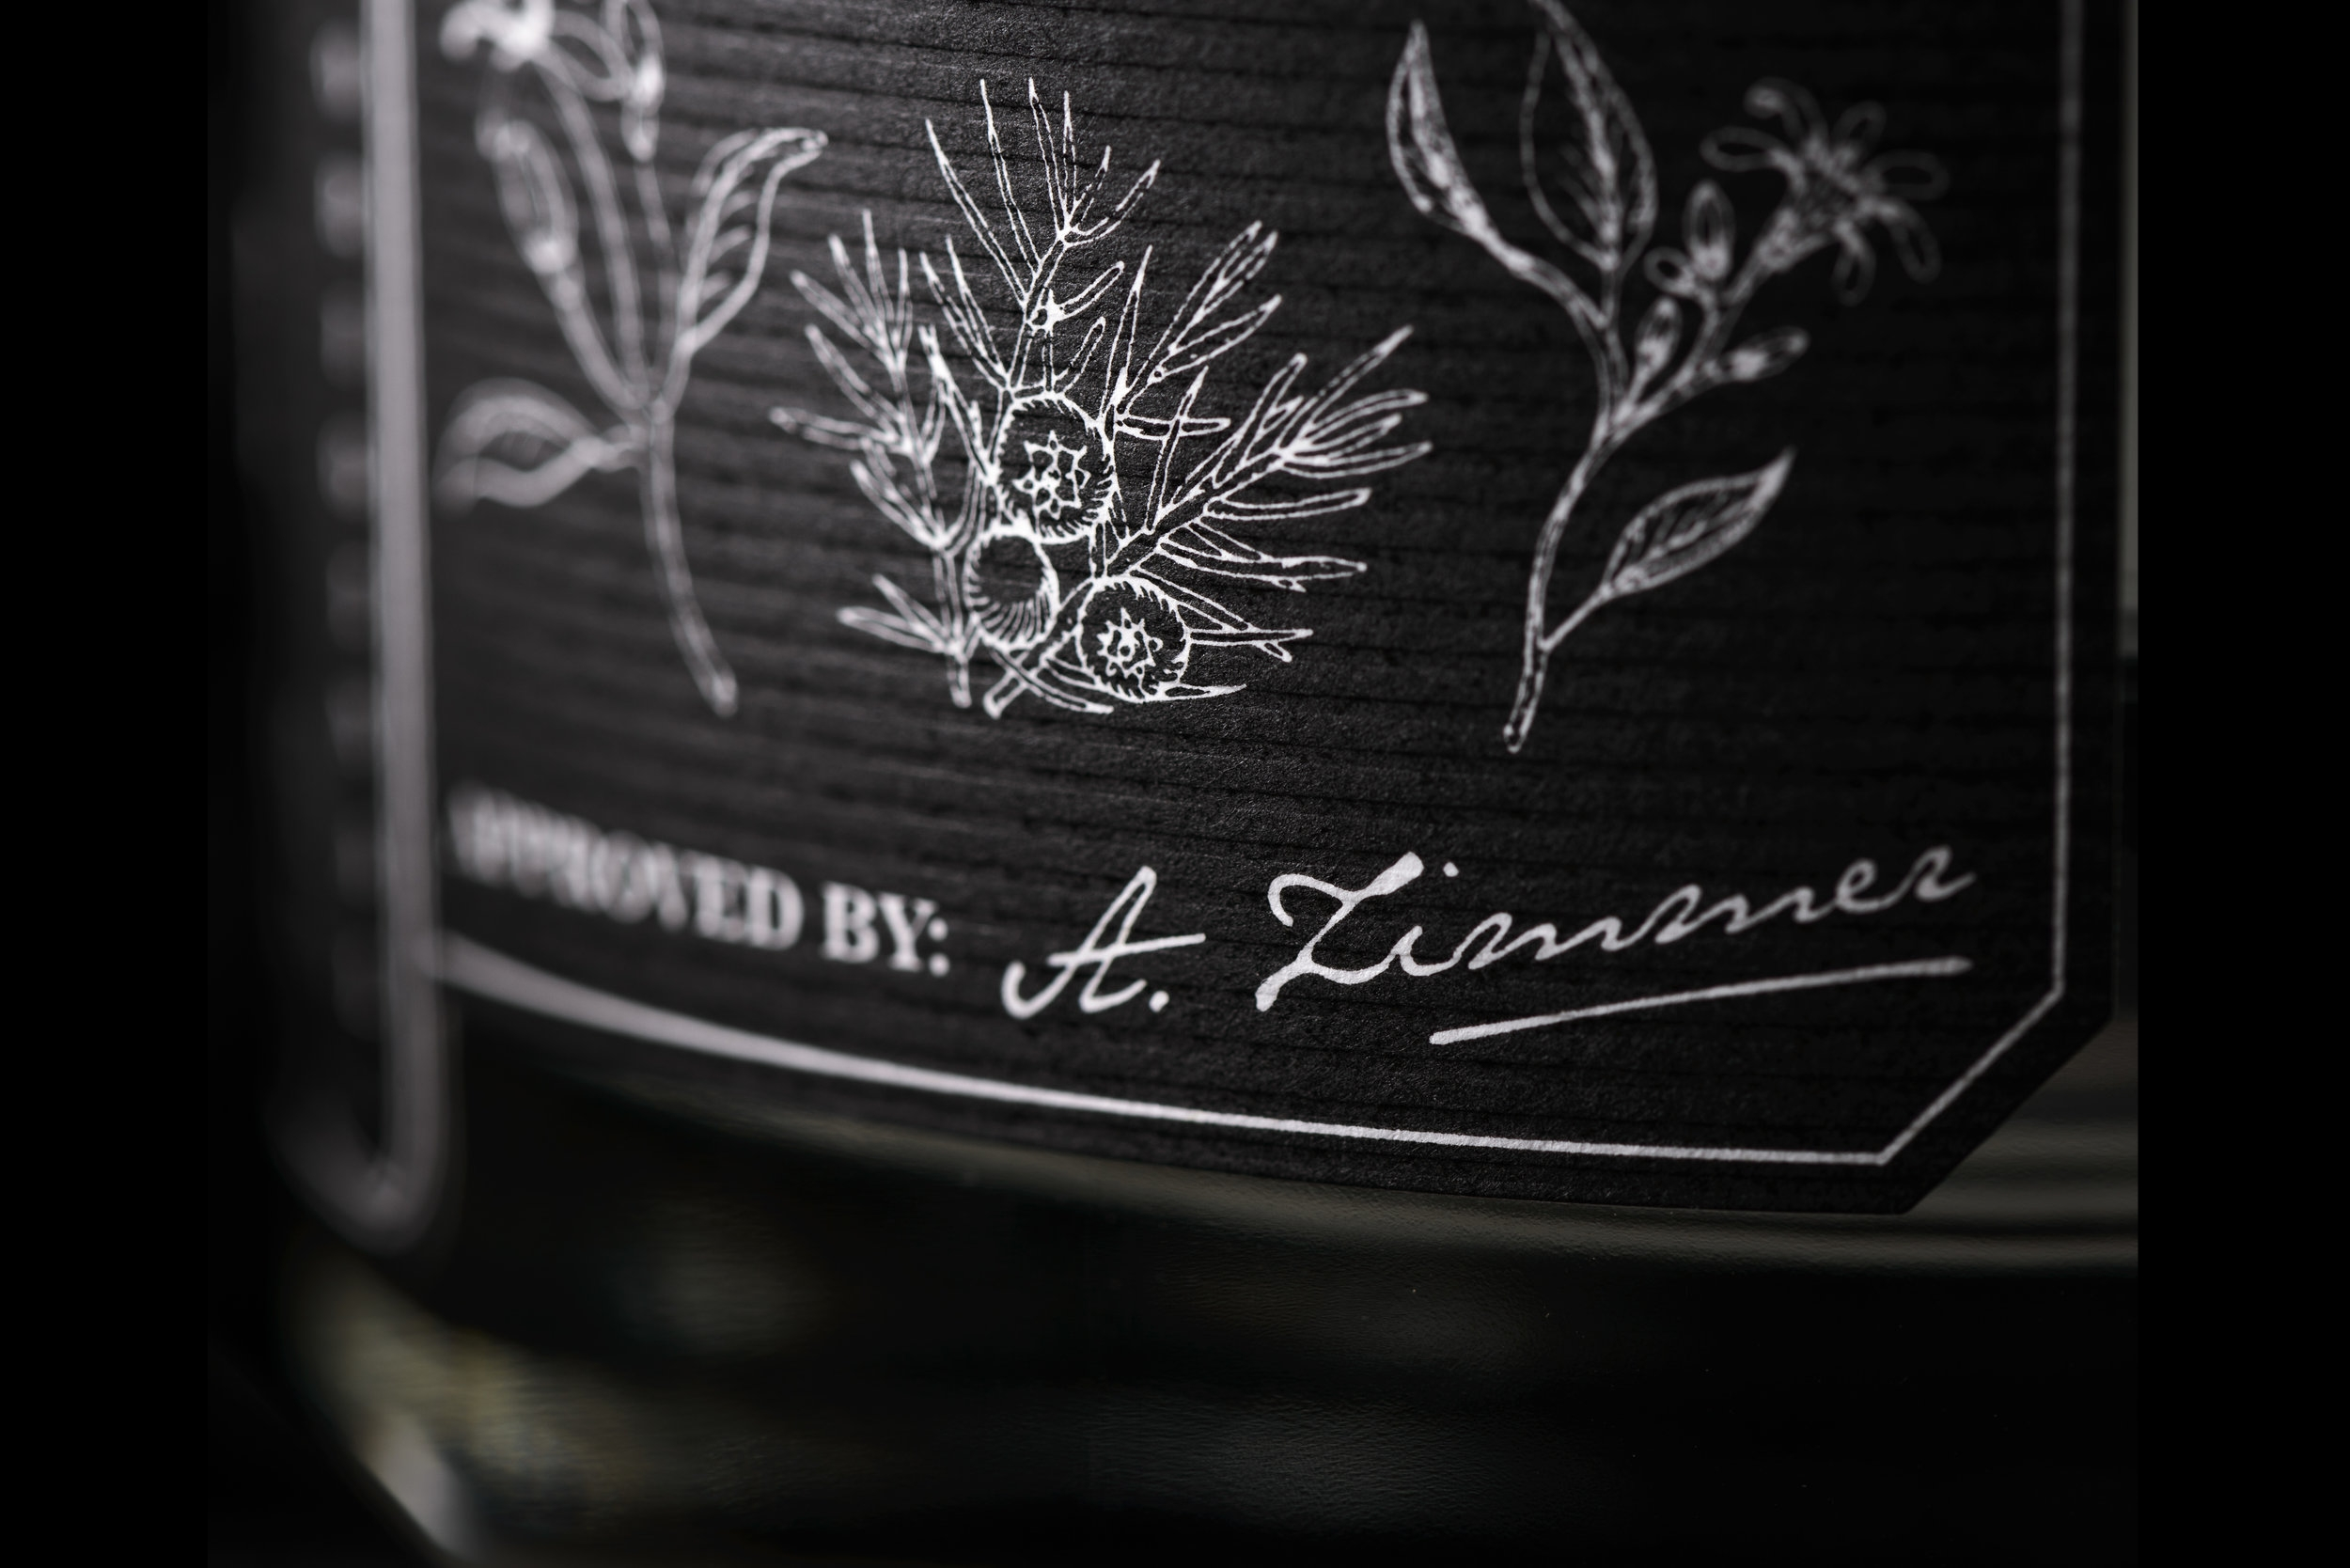 A unique blend ... - … of handpicked and exquisite ingredients makes ROOM 43 a remarkable gin. The base is an organic wheat of the highest grade which is then combined with the finest botanicals before being distilled once again. After the final distillation process the gin is given time to rest to develop its full flavour potential. Once it is fully matured it is combined with crystal clear bedrock water from the Austrian Mühlviertel area and diluted to the desired 43%.